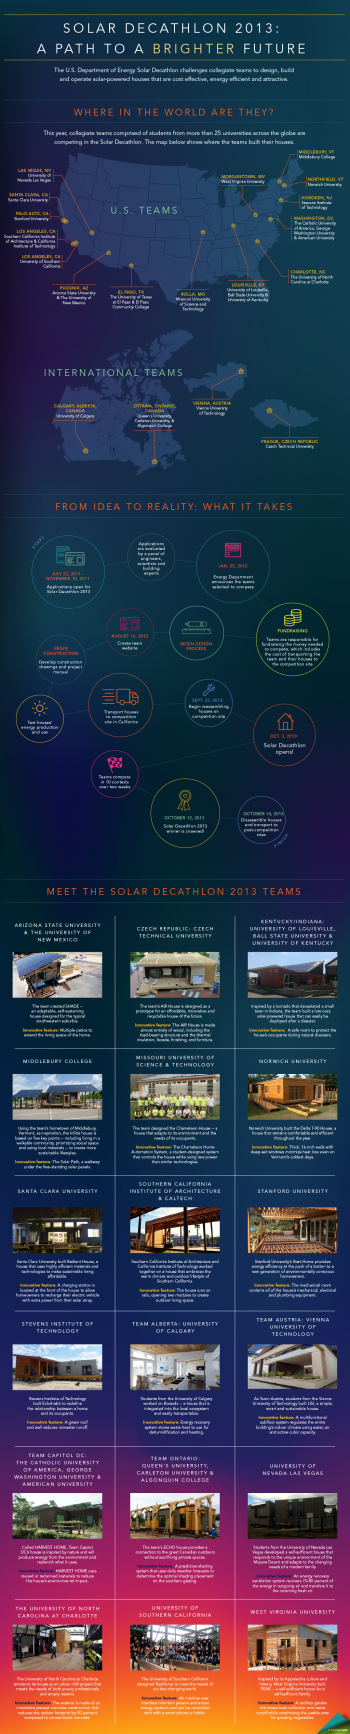 """Our latest infographic -- Solar Decathlon 2013: The Path to a Brighter Future -- takes a look at the teams competing in this year's competition and highlights innovative design features in each of the teams' houses. Not featured in the """"Meet the Teams"""" section, Team Texas will also compete at Solar Decathlon 2013 with their ADAPT house. 